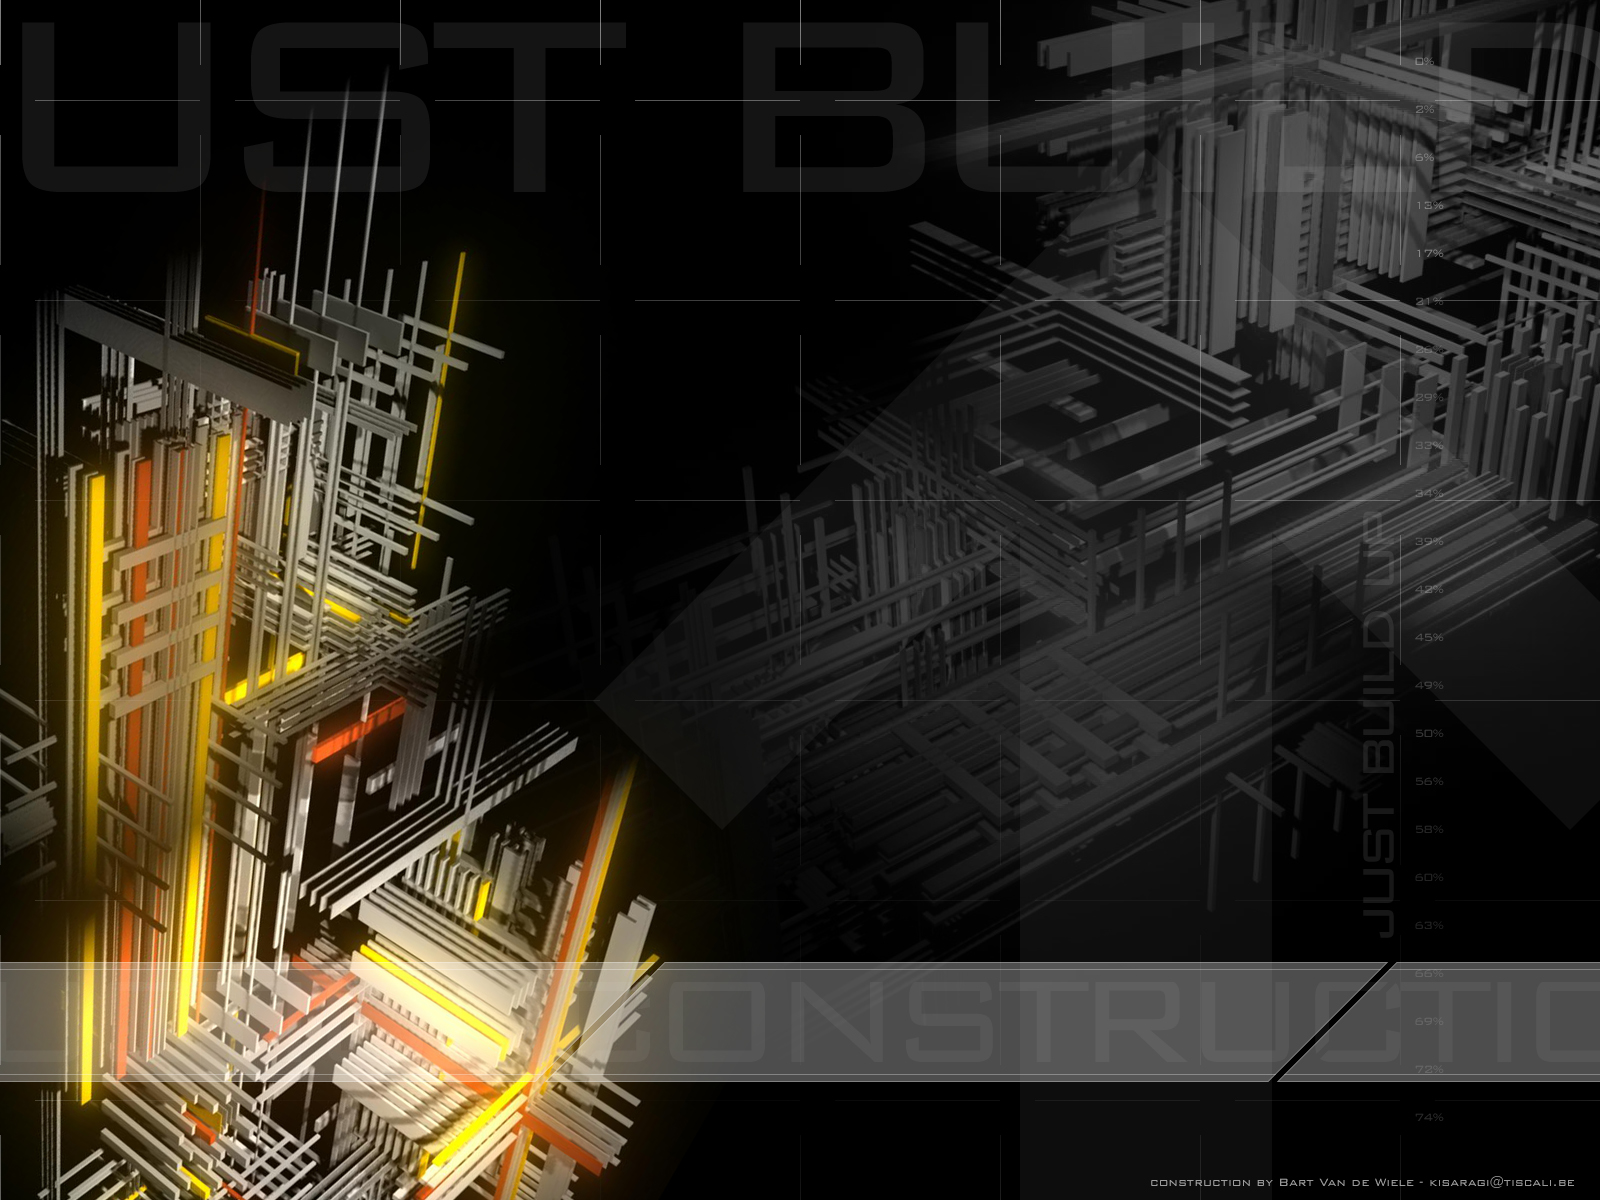 Construction HD Wallpapers, 0.79 Mb, Chong Cannata